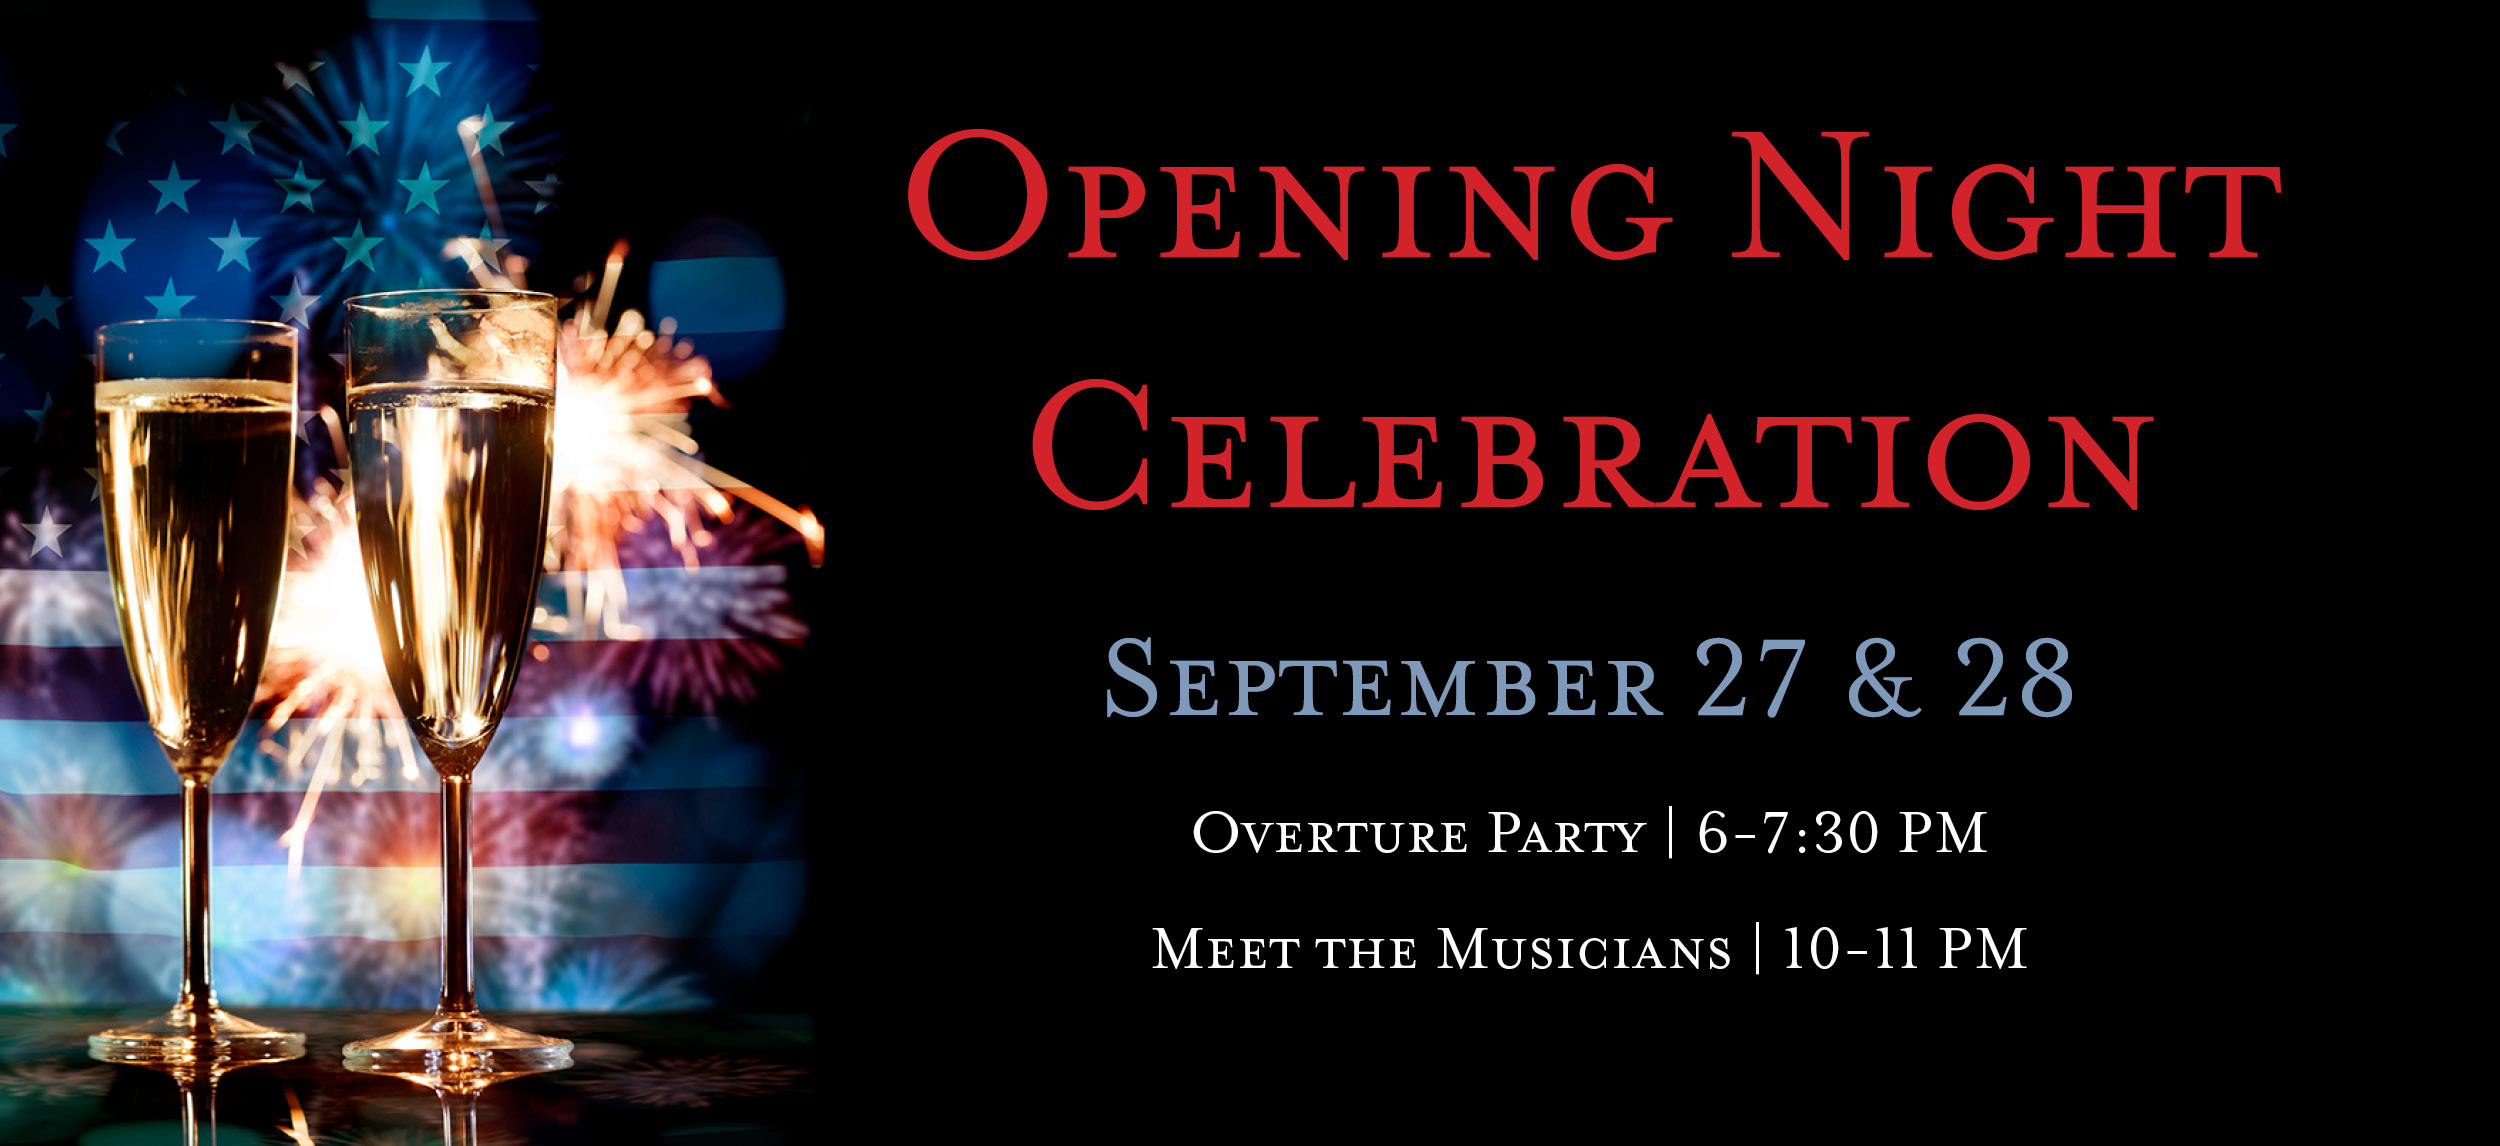 Champagne, fireworks and an American flag. Opening Night Celebration. September 27 & 28. Overture from 6-7:30 PM. Meet the Musicians from 10-11 PM.